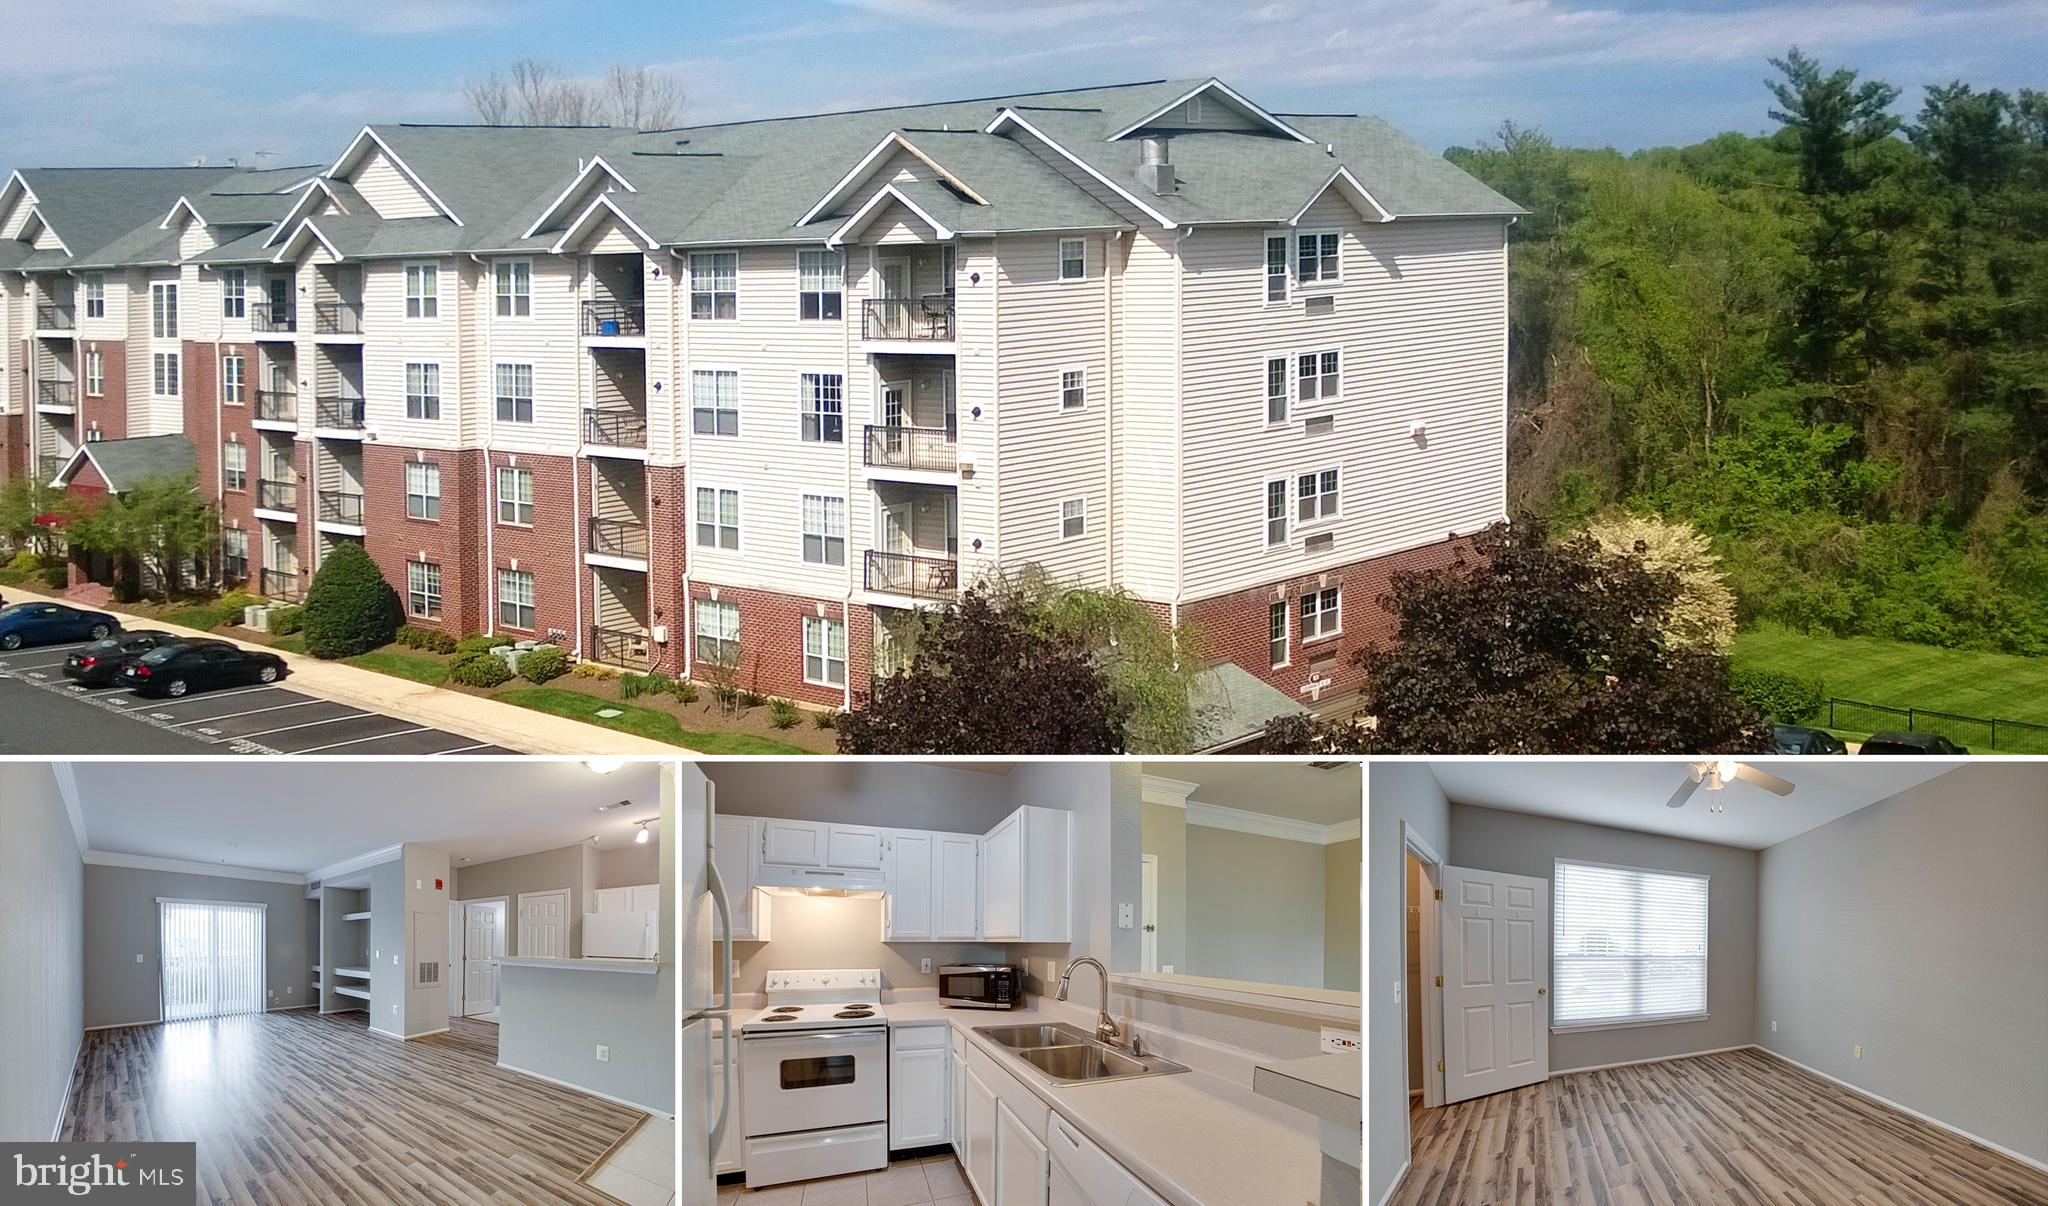 Great ground level condo - walk to McLean Silver Line metro + Wegmans across the street opening soon. The unit has laminate floors and newer windows and is in a controlled access building. Larger 735 sqft Danielle model. 1 reserved parking spot + 2 guest tags. The Gates of McLean is a gated community with great amenities like an outdoor swimming pool, gym, clubhouse, sports court, grill area and walking paths. Minutes to everything in Tysons and minutes from toll road. Make sure to check out the Matterport 3D tour.